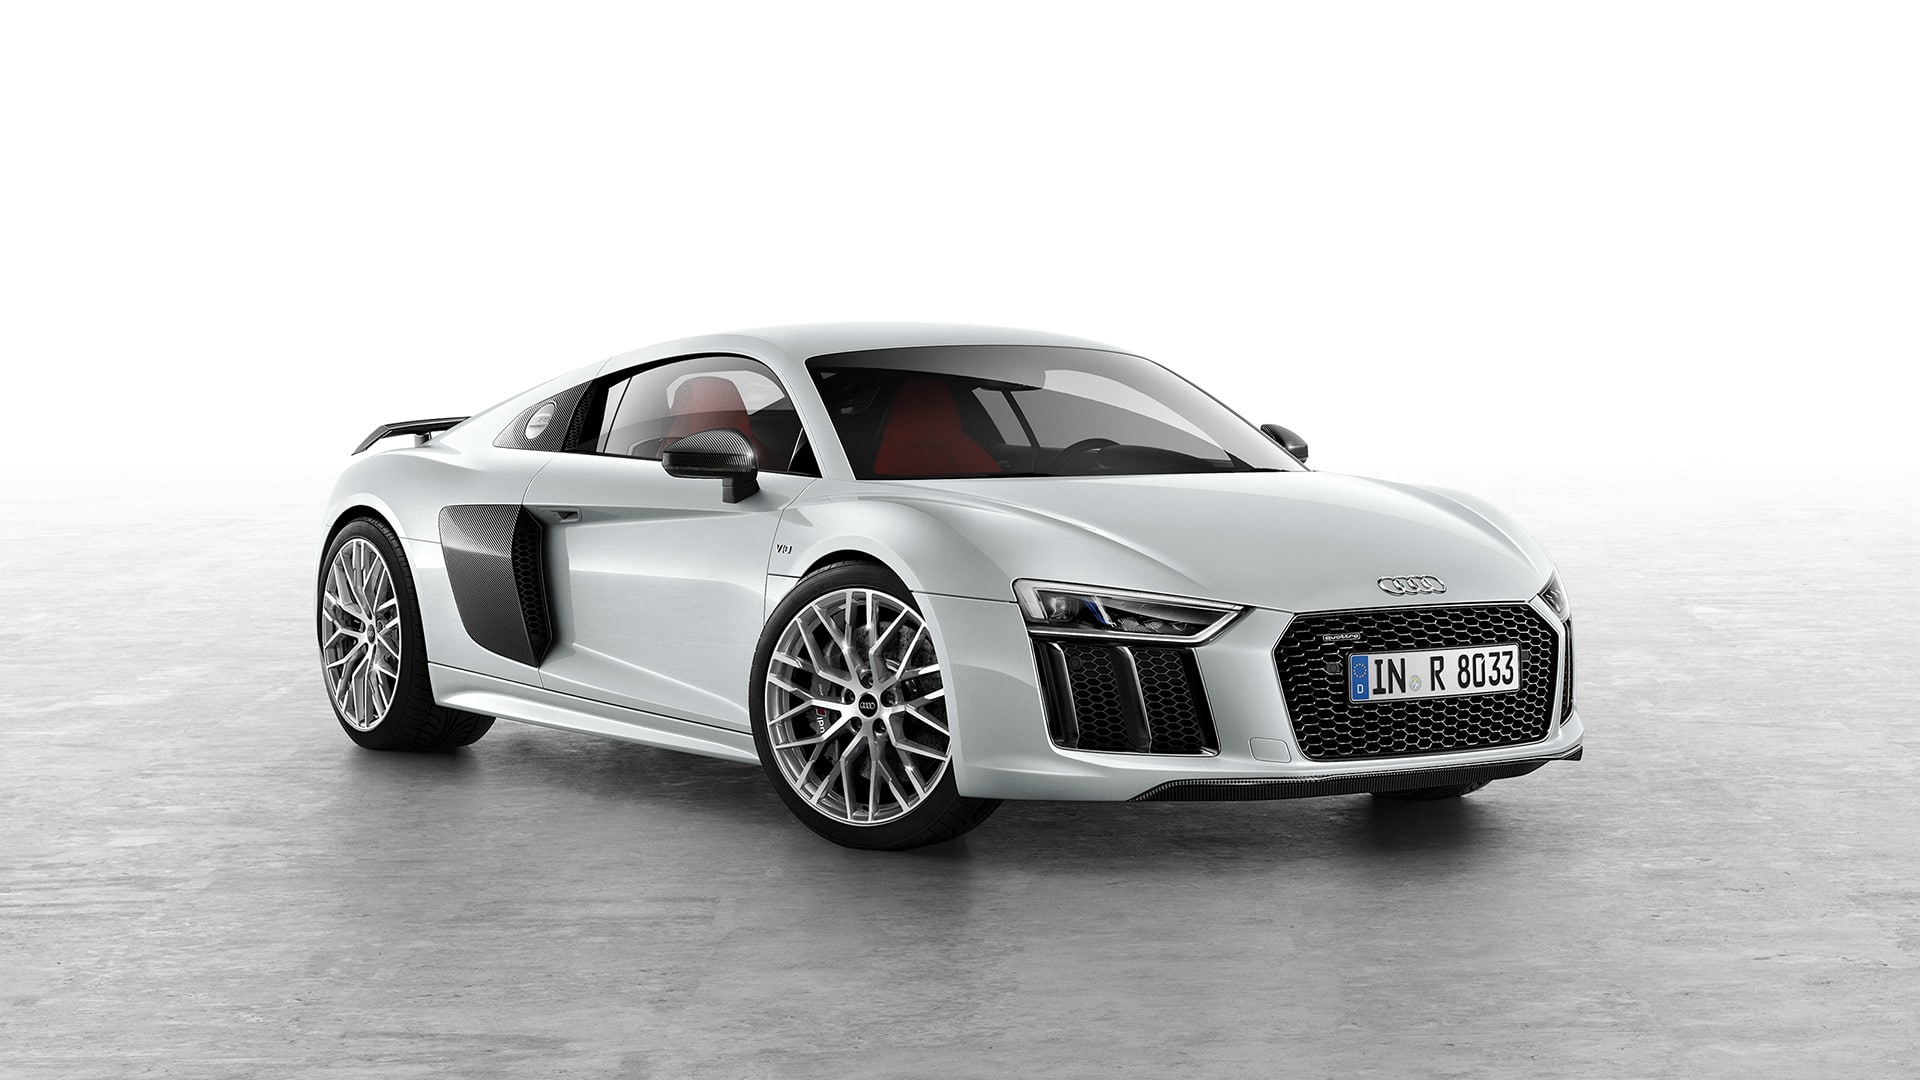 audi r8 coup european supercar audi australia audi australia official website luxury. Black Bedroom Furniture Sets. Home Design Ideas